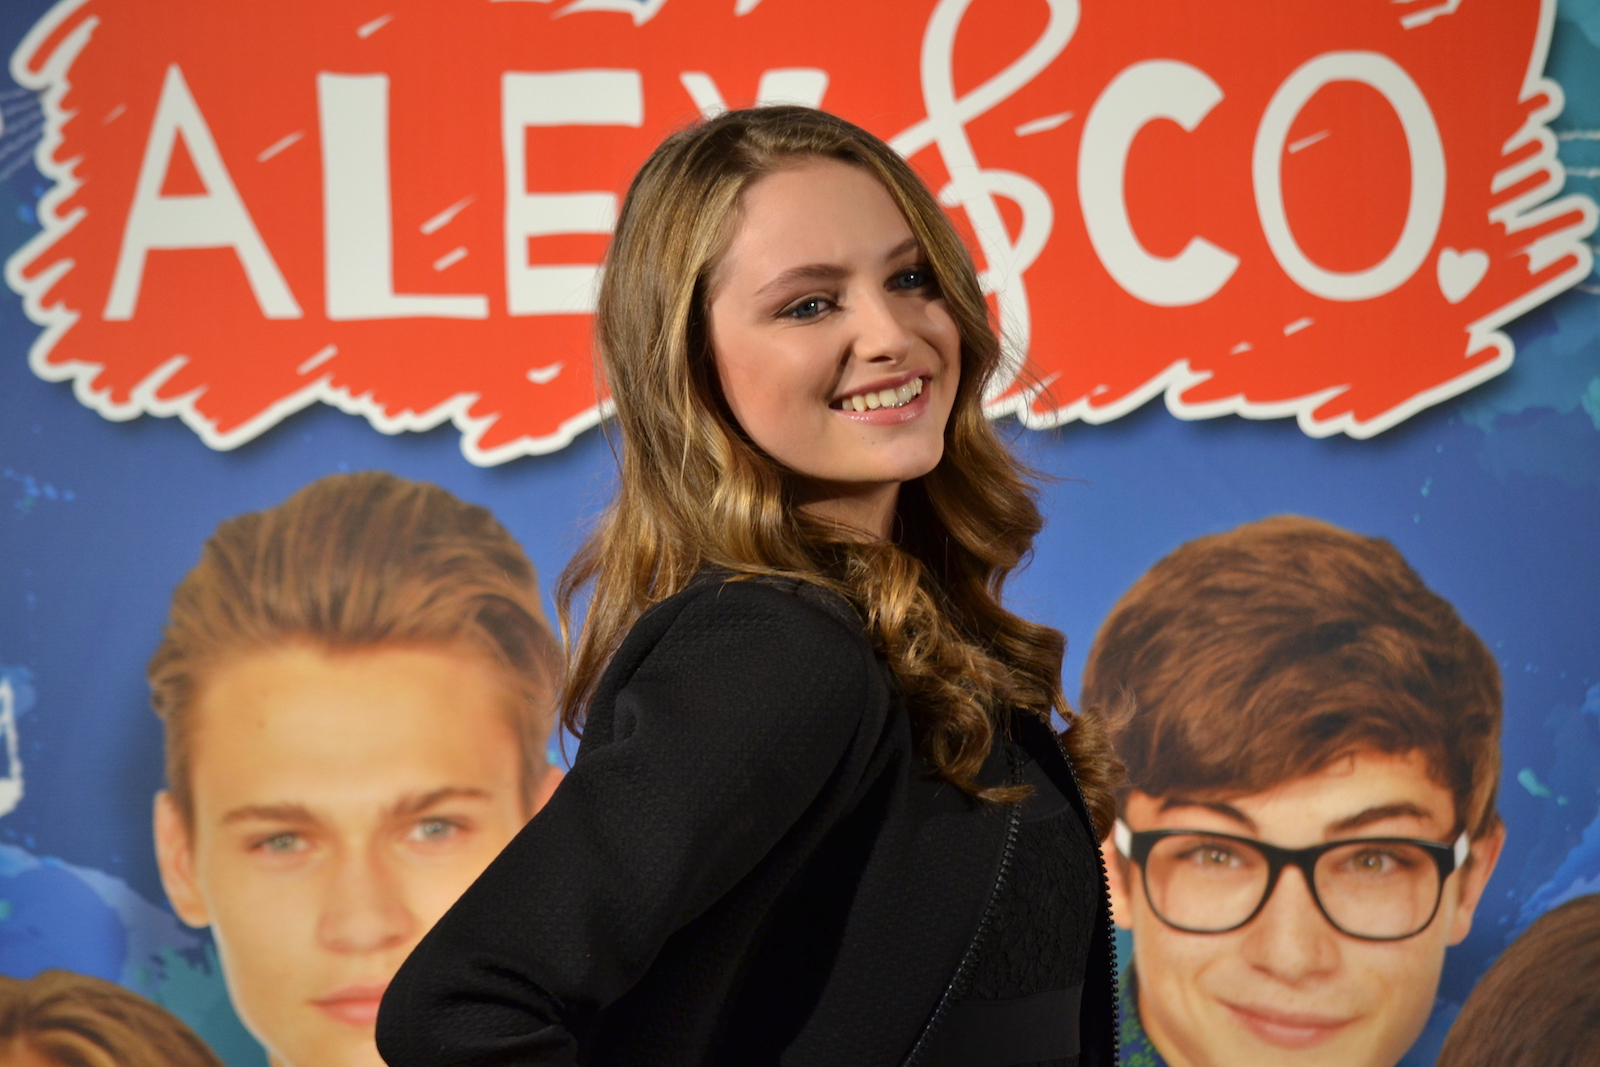 Roma Fiction Fest 2015: Beatrice Vendramin sul red carpet di Alex & Co